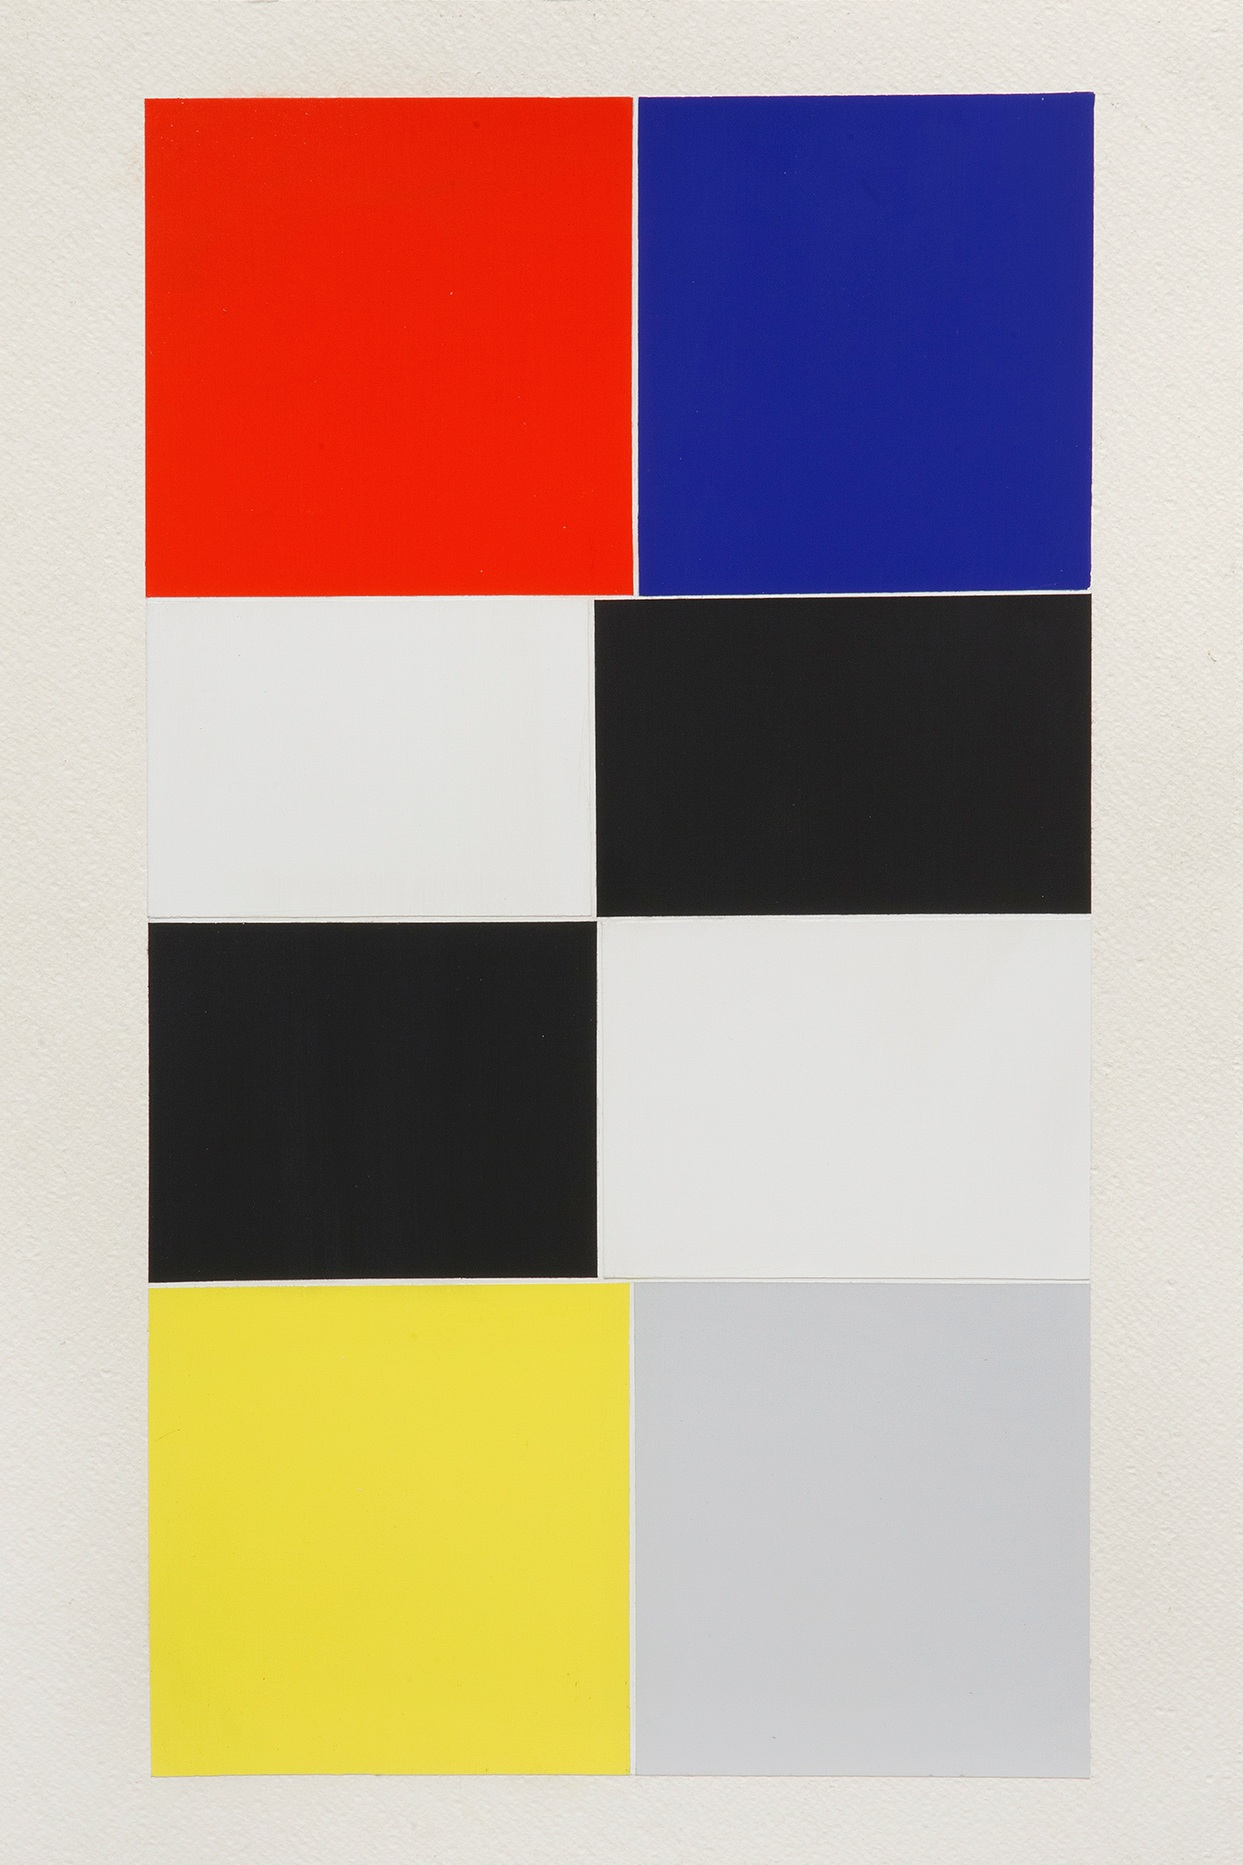 Atone, 2017Acrylic paint on gesso on cotton paper22 x 14 inches -